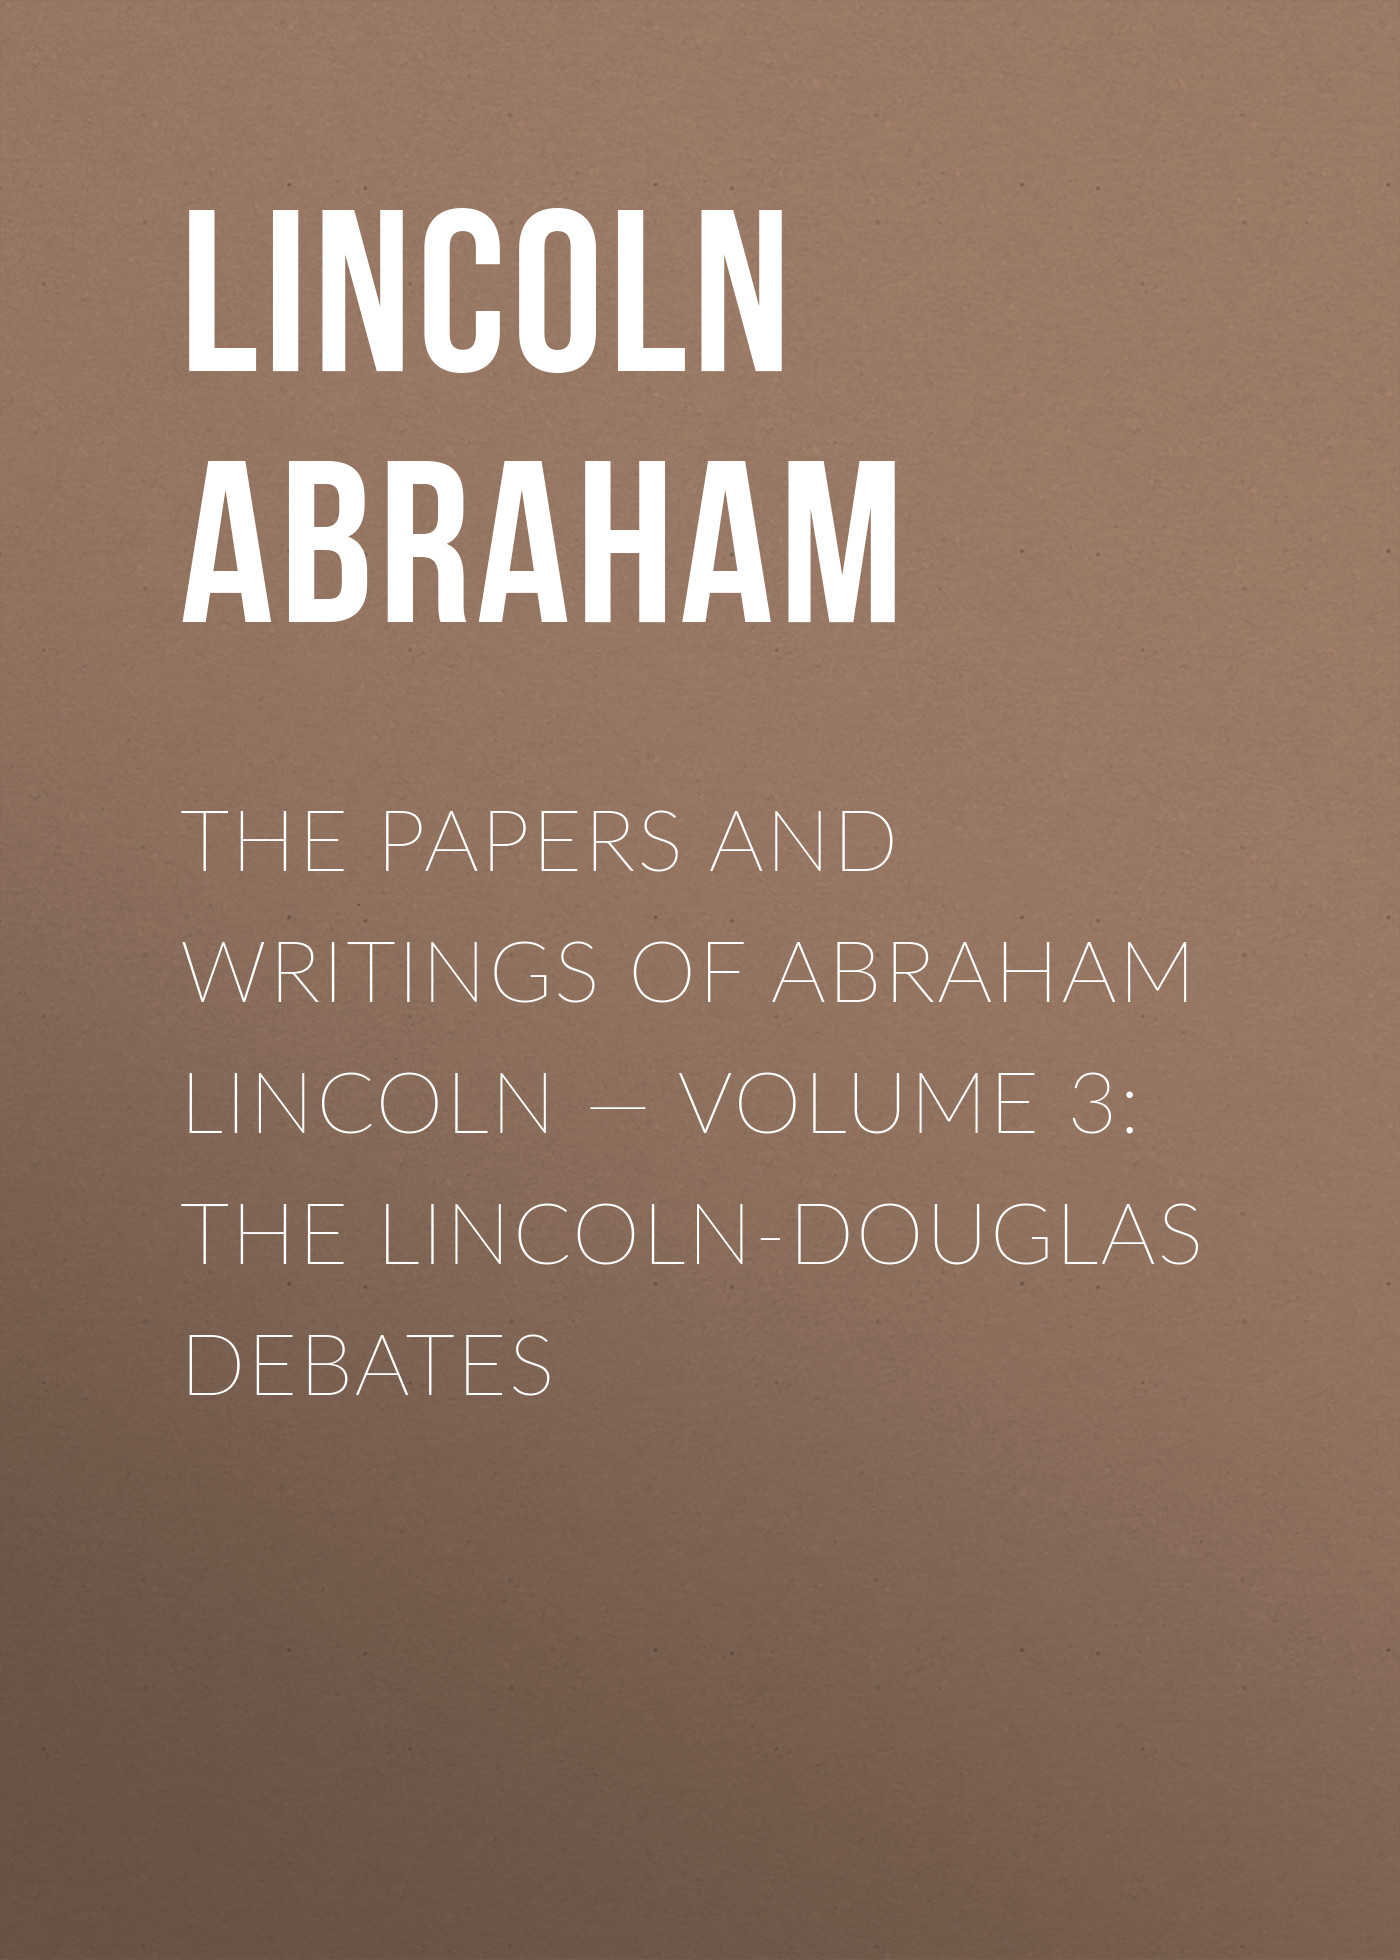 Lincoln Abraham The Papers And Writings Of Abraham Lincoln — Volume 3: The Lincoln-Douglas Debates катушка зажигания для исследовательской экспедиции ford lincoln mercury 3l3e12a366ca uf 537